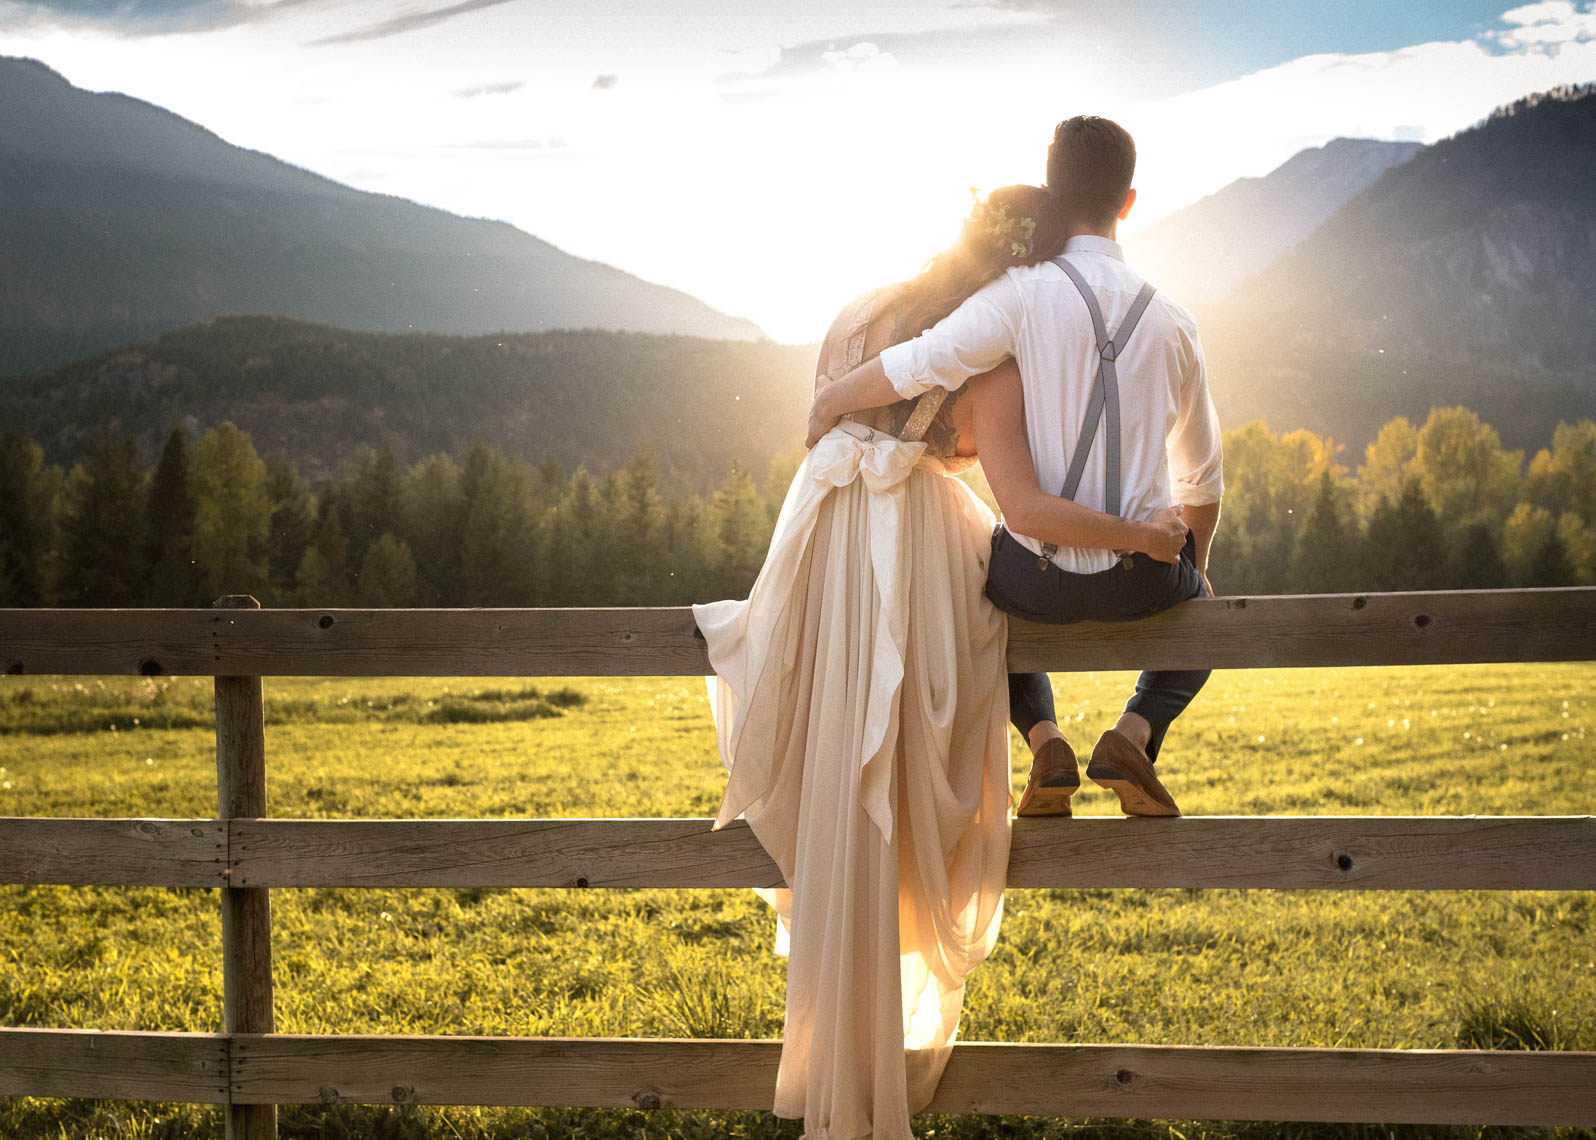 Bride and groom on a wooden fence at sunset in the mountains.